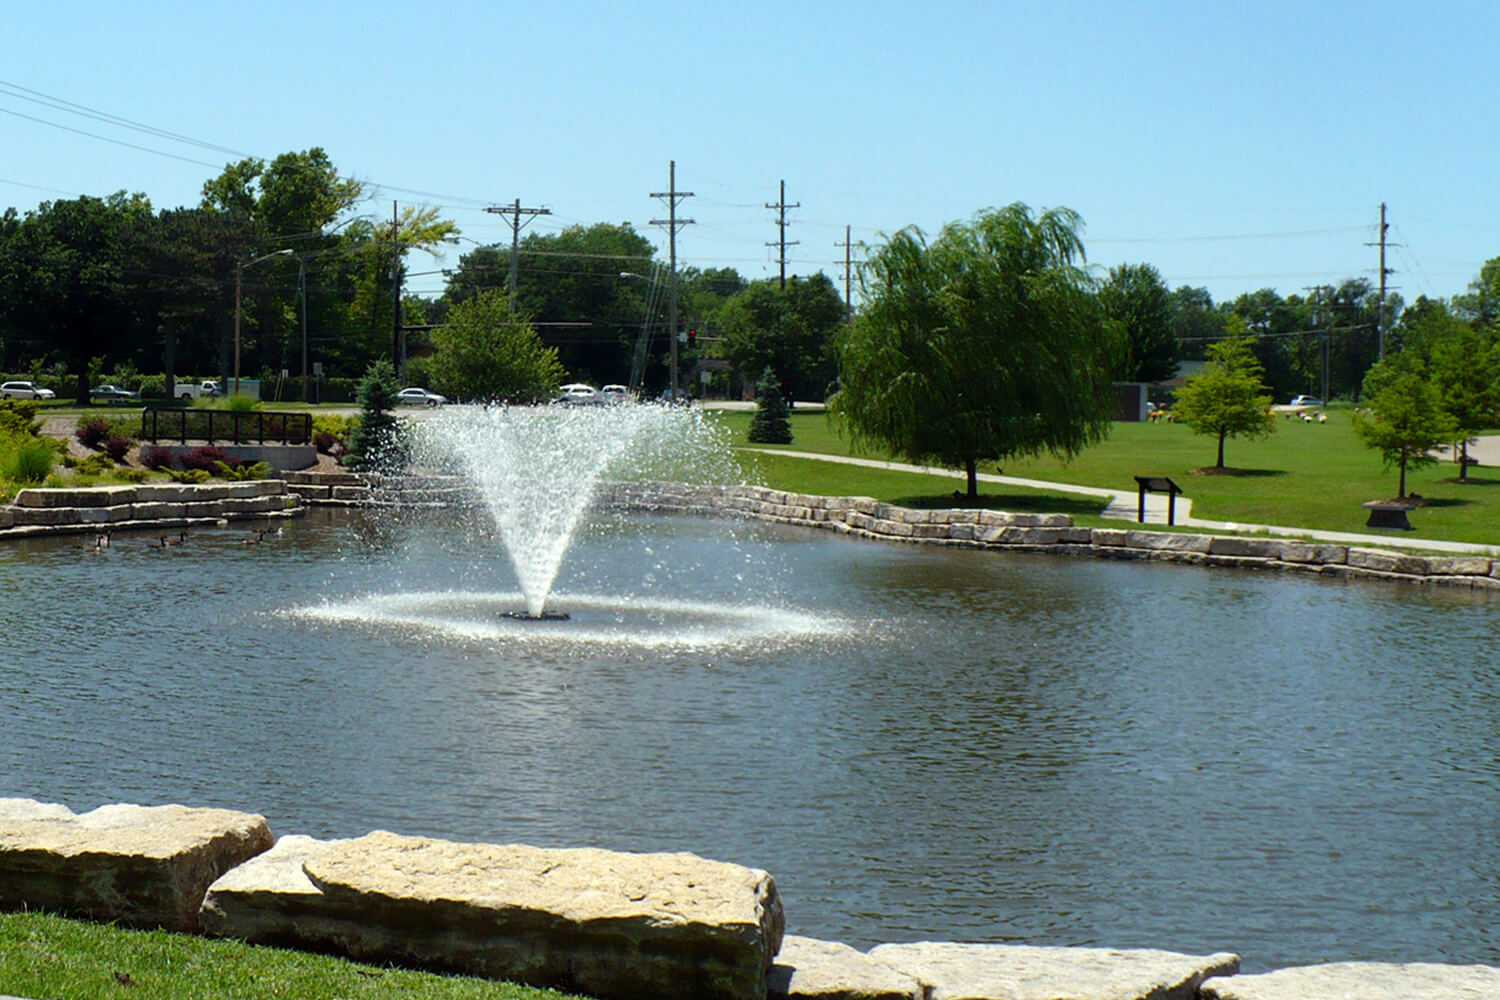 One of Otterbine's Gemini Aerating Fountains in a park